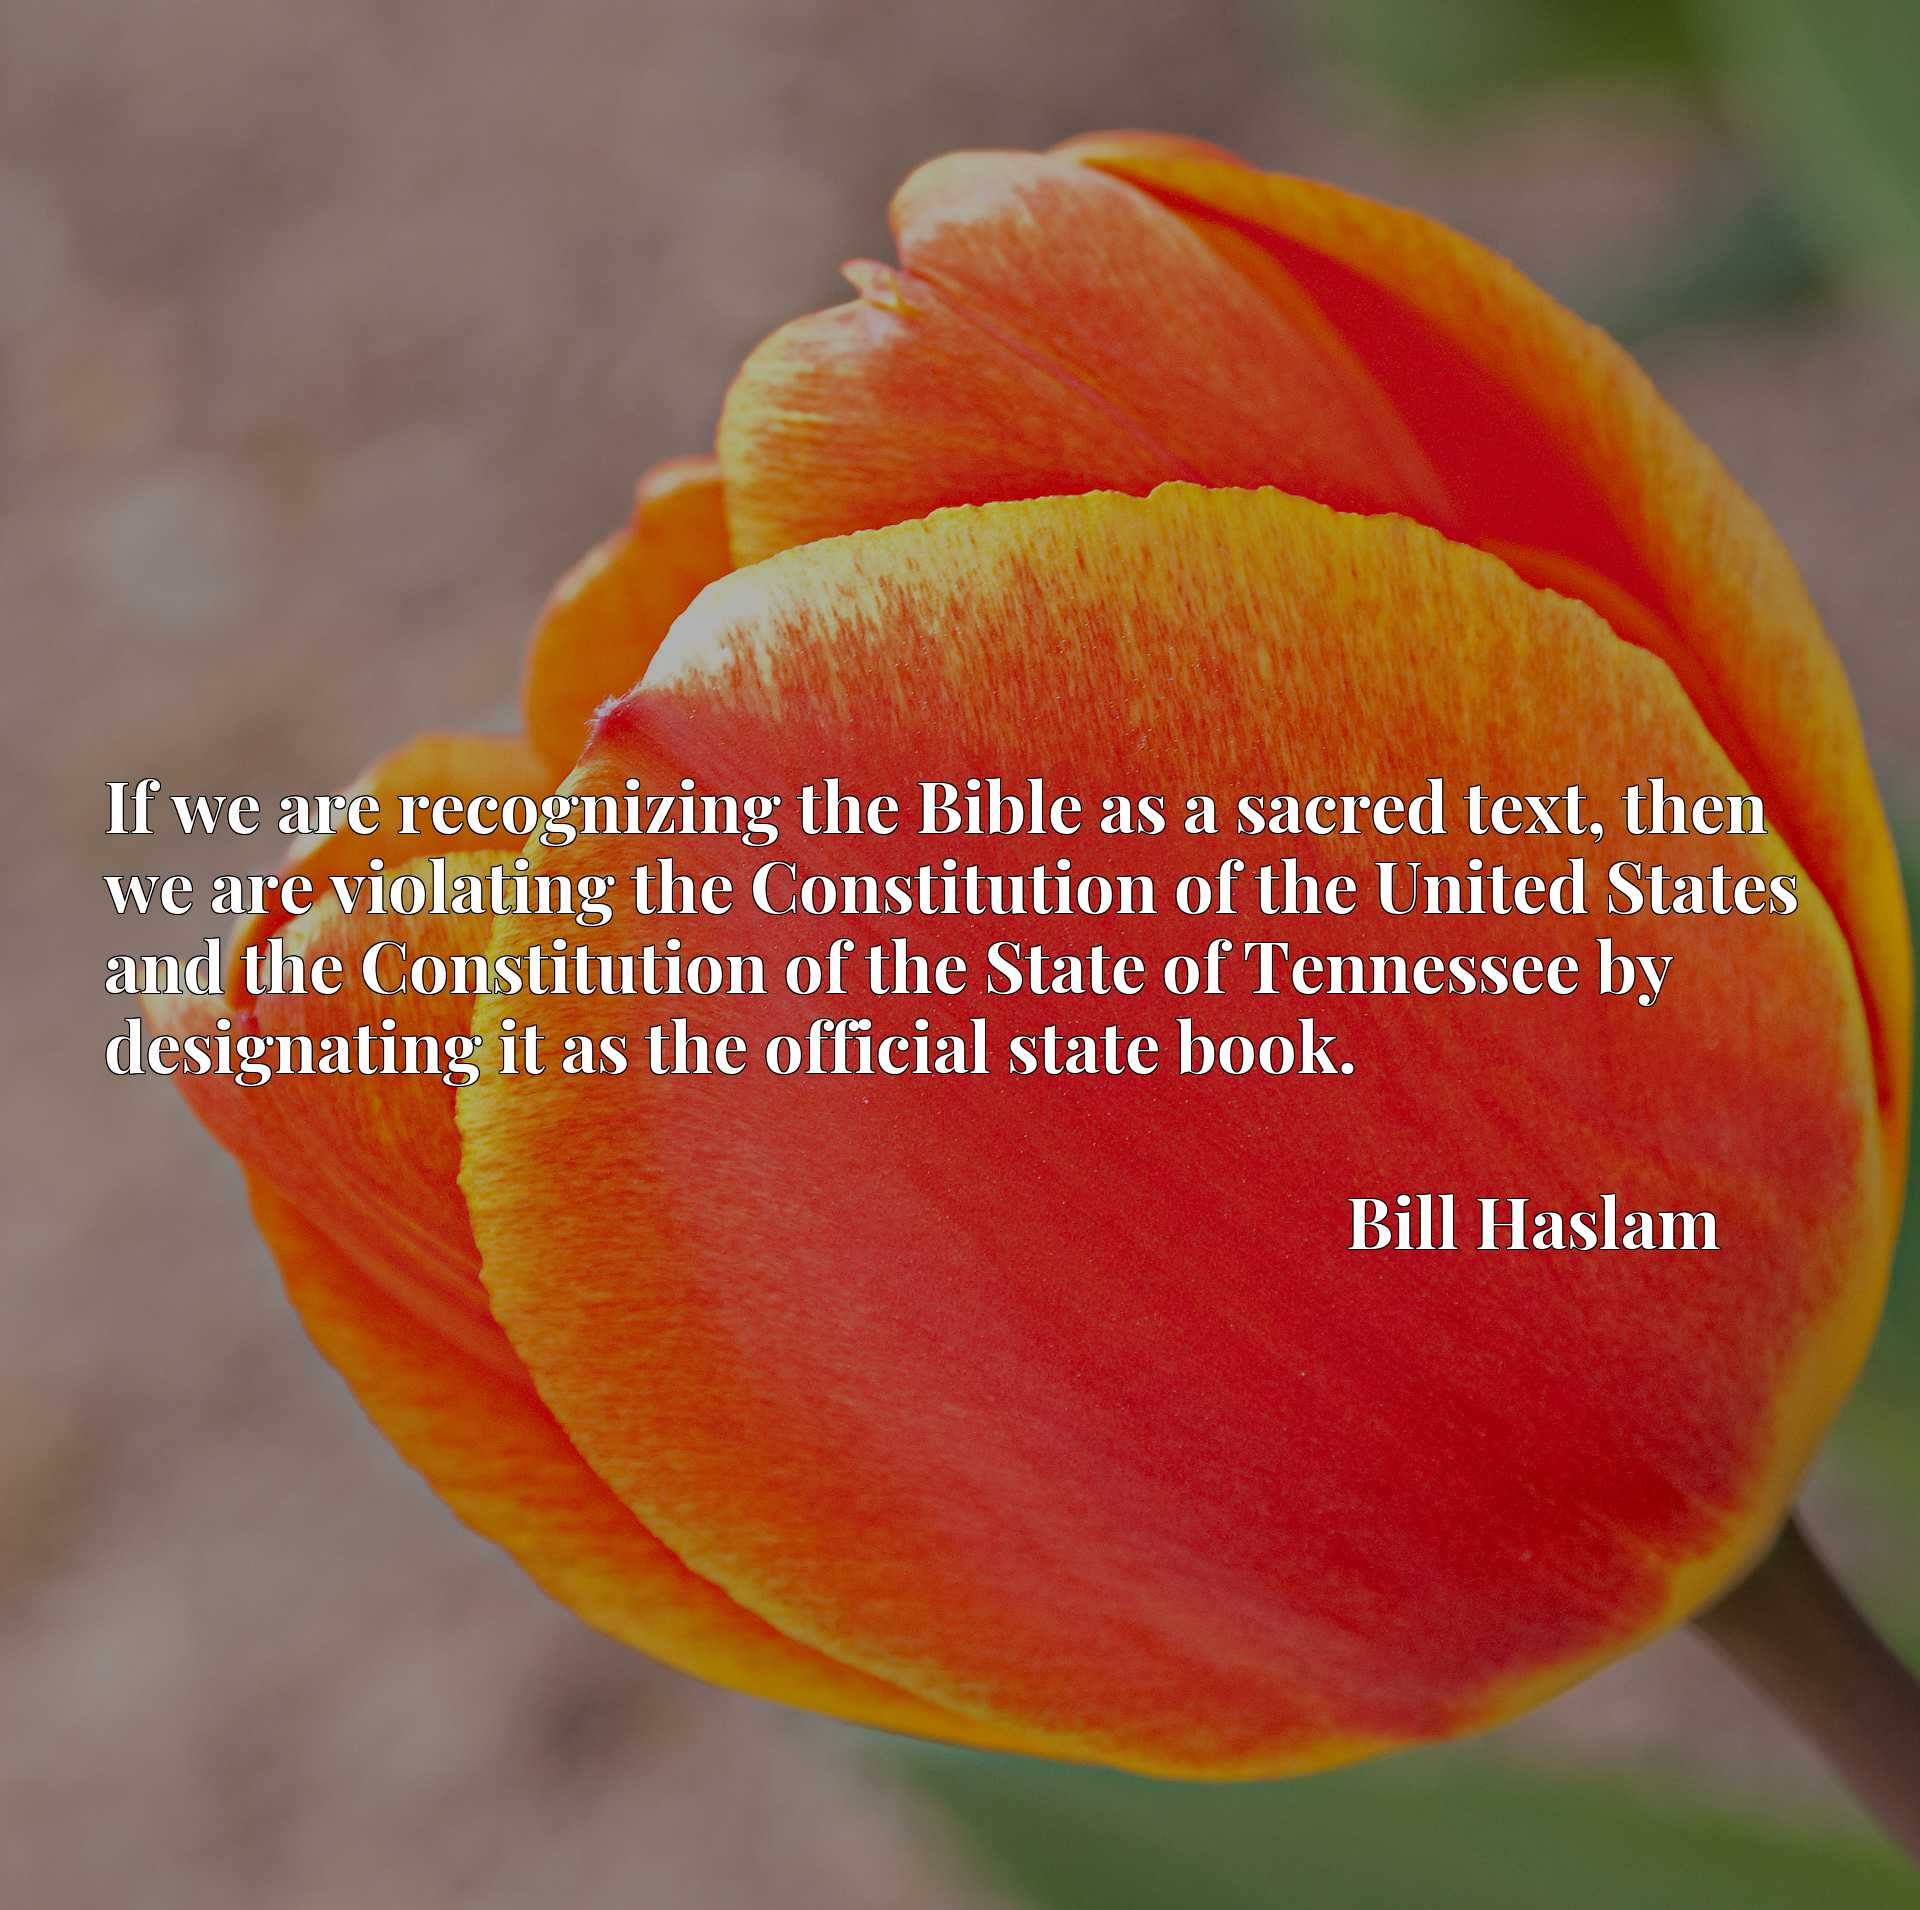 If we are recognizing the Bible as a sacred text, then we are violating the Constitution of the United States and the Constitution of the State of Tennessee by designating it as the official state book.